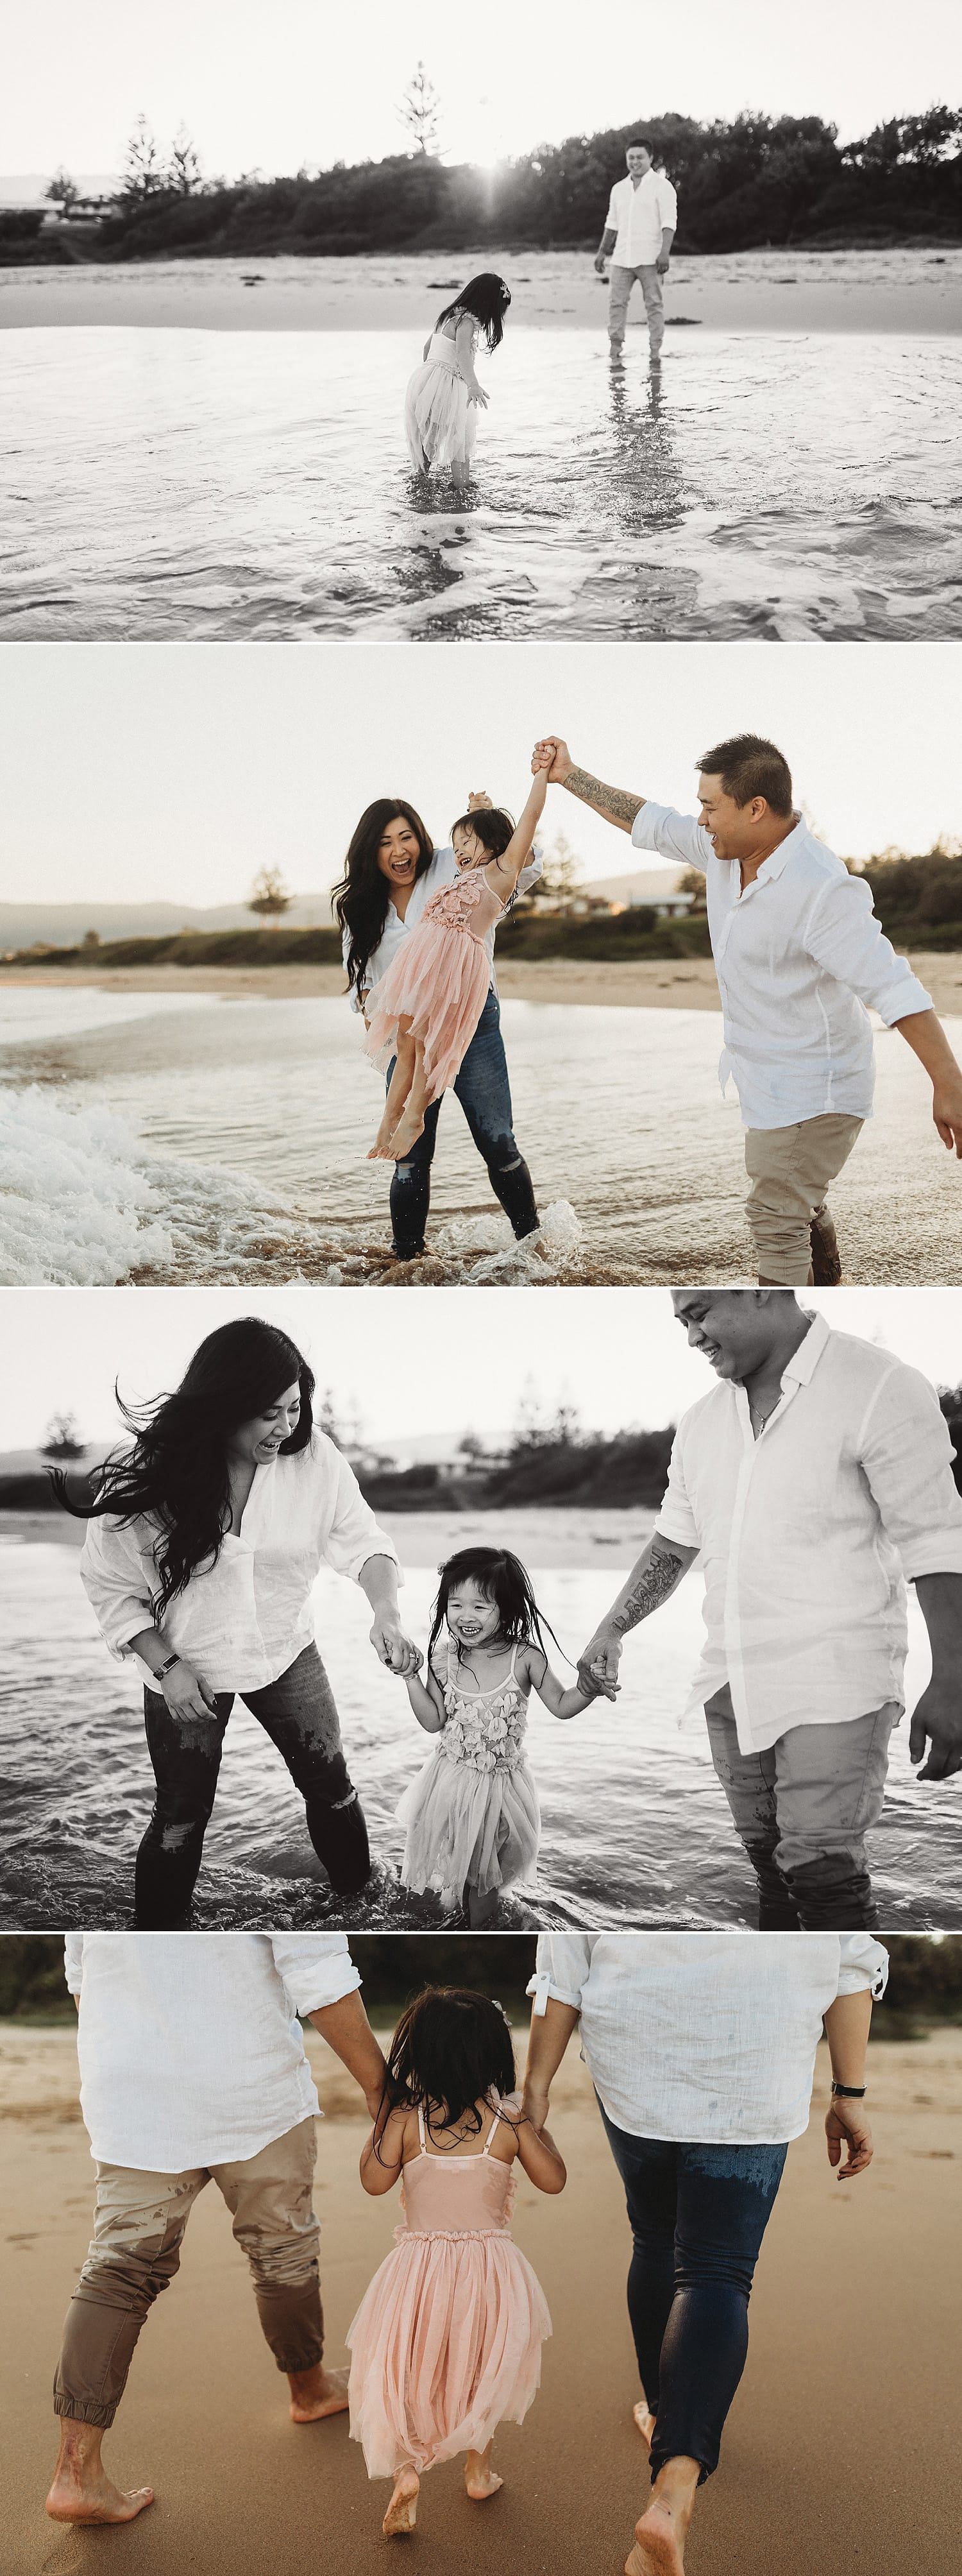 Wollongong-Family-Photographer-Lifestyle-Beach-Session